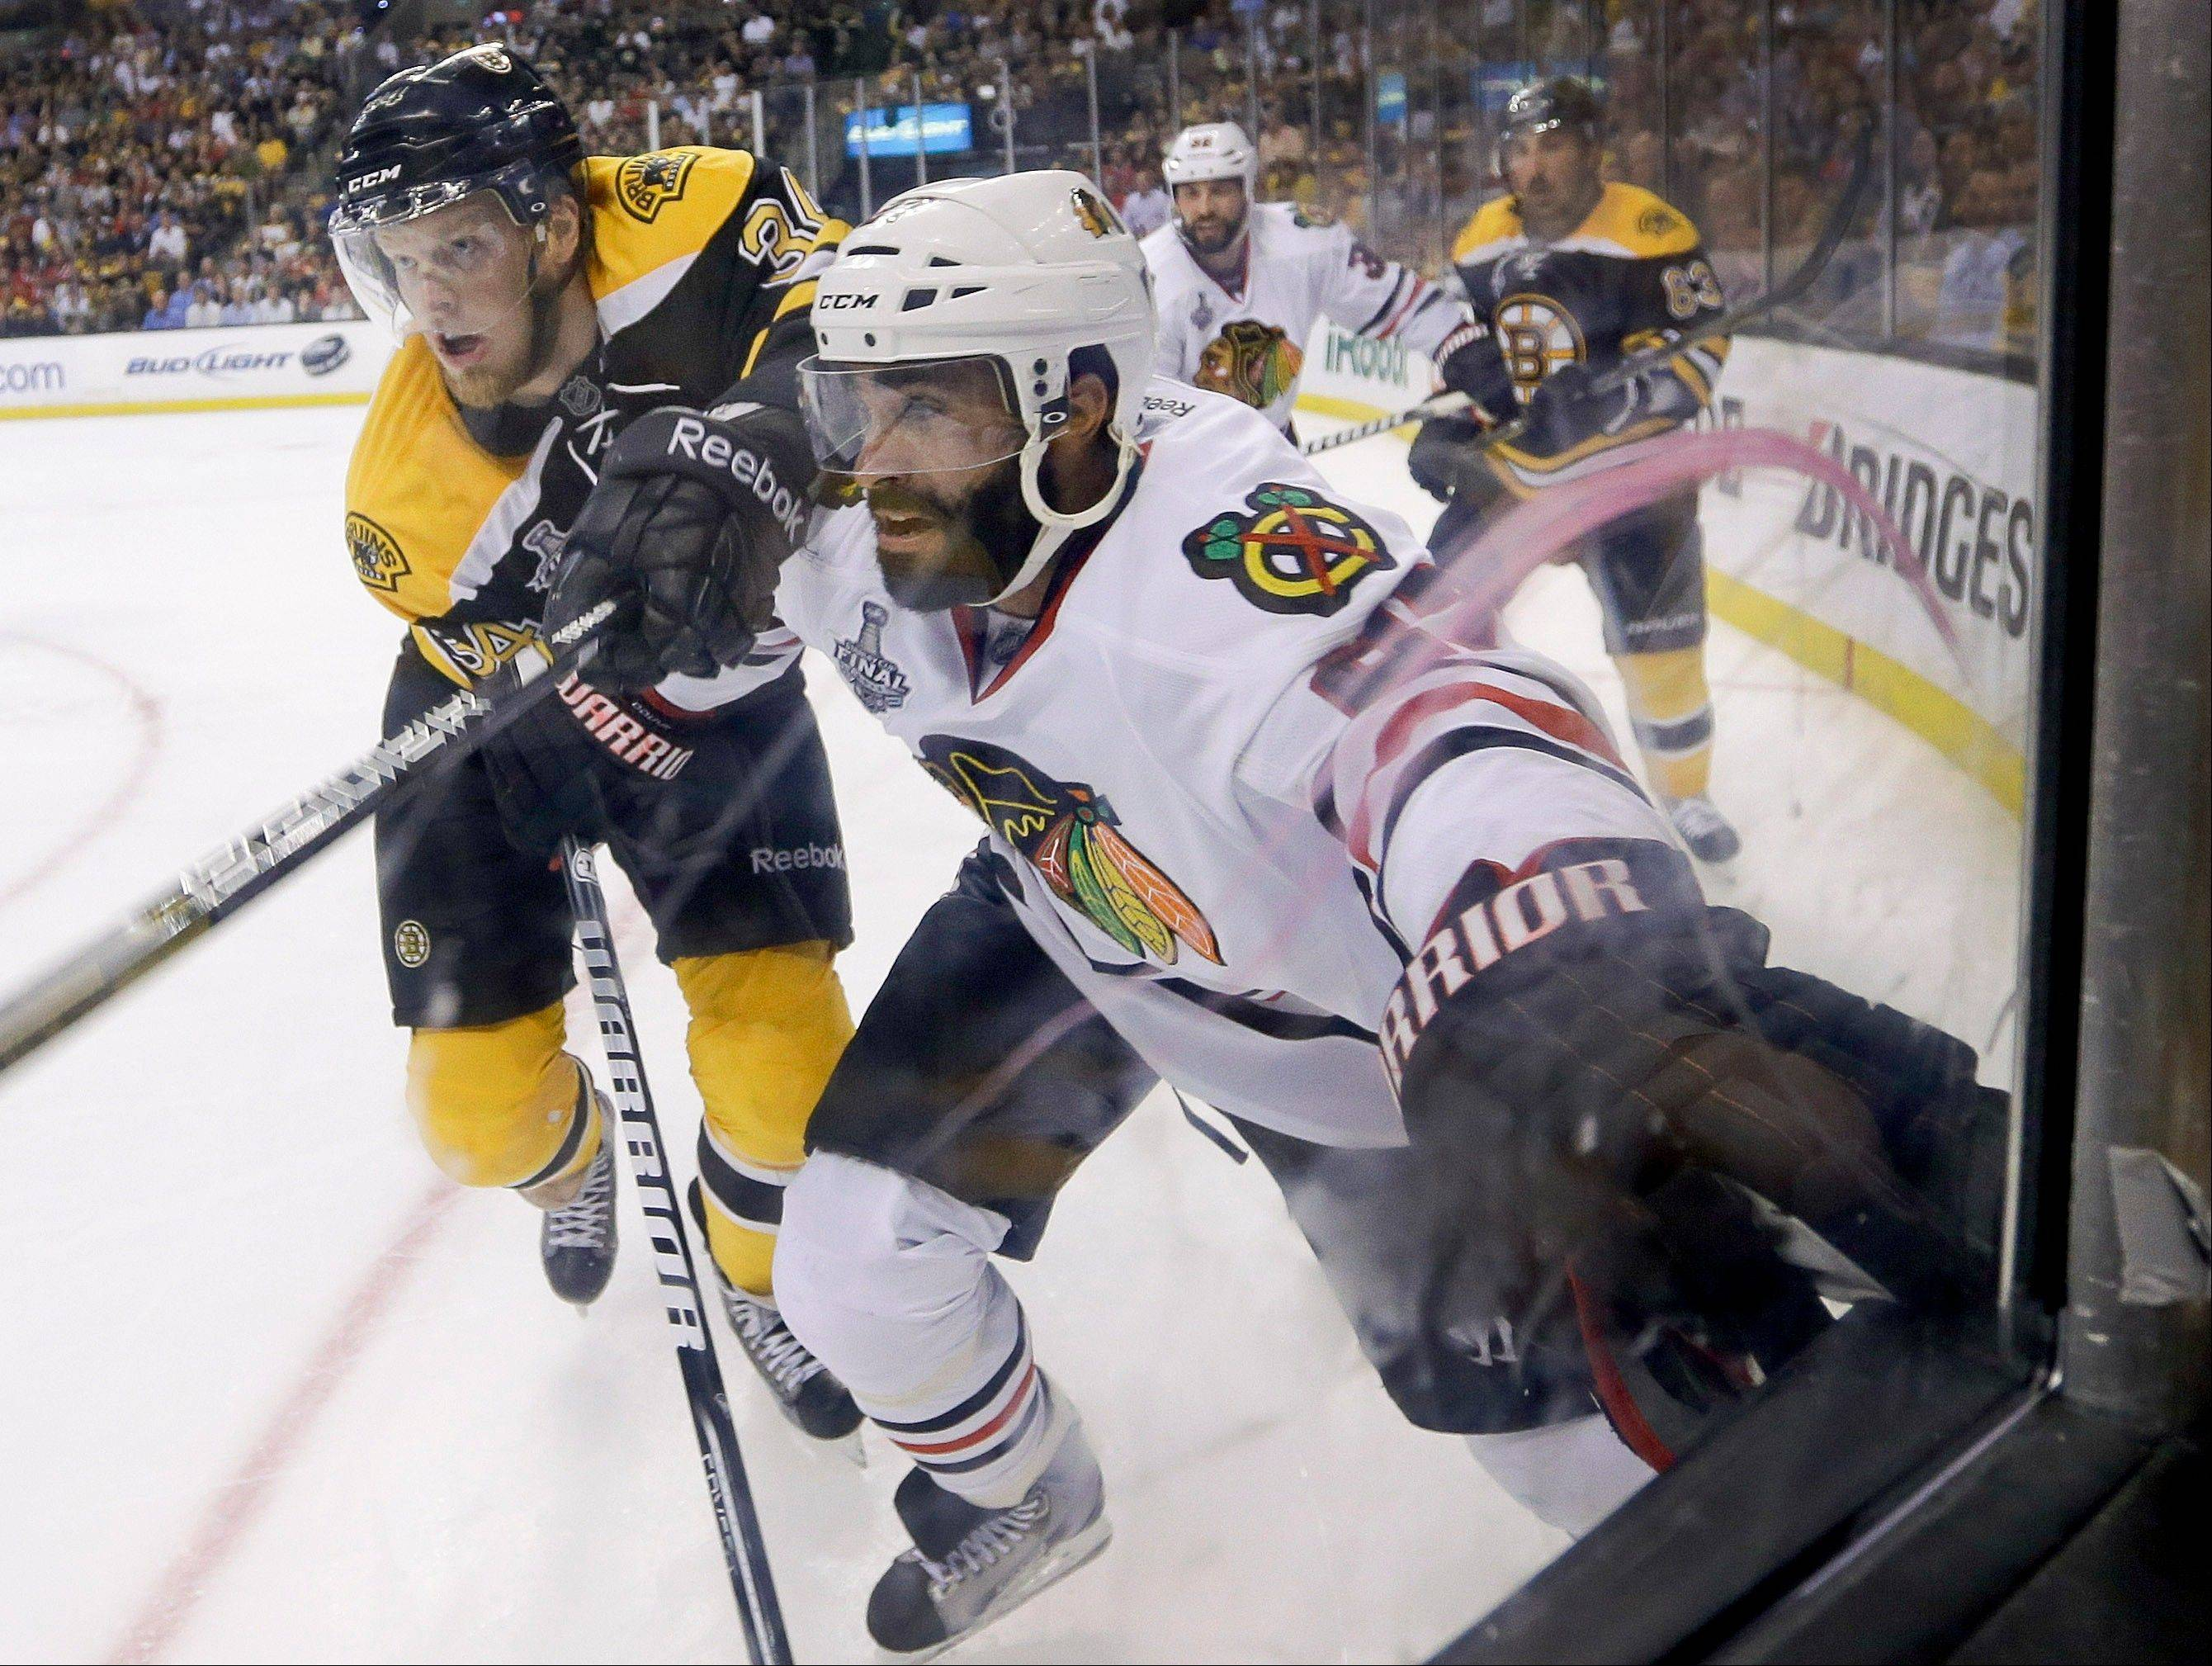 Boston Bruins center Carl Soderberg (34), of Sweden, and Chicago Blackhawks defenseman Johnny Oduya (27), of Sweden, fight for position along the boards during the second period in Game 6 Monday in Boston.